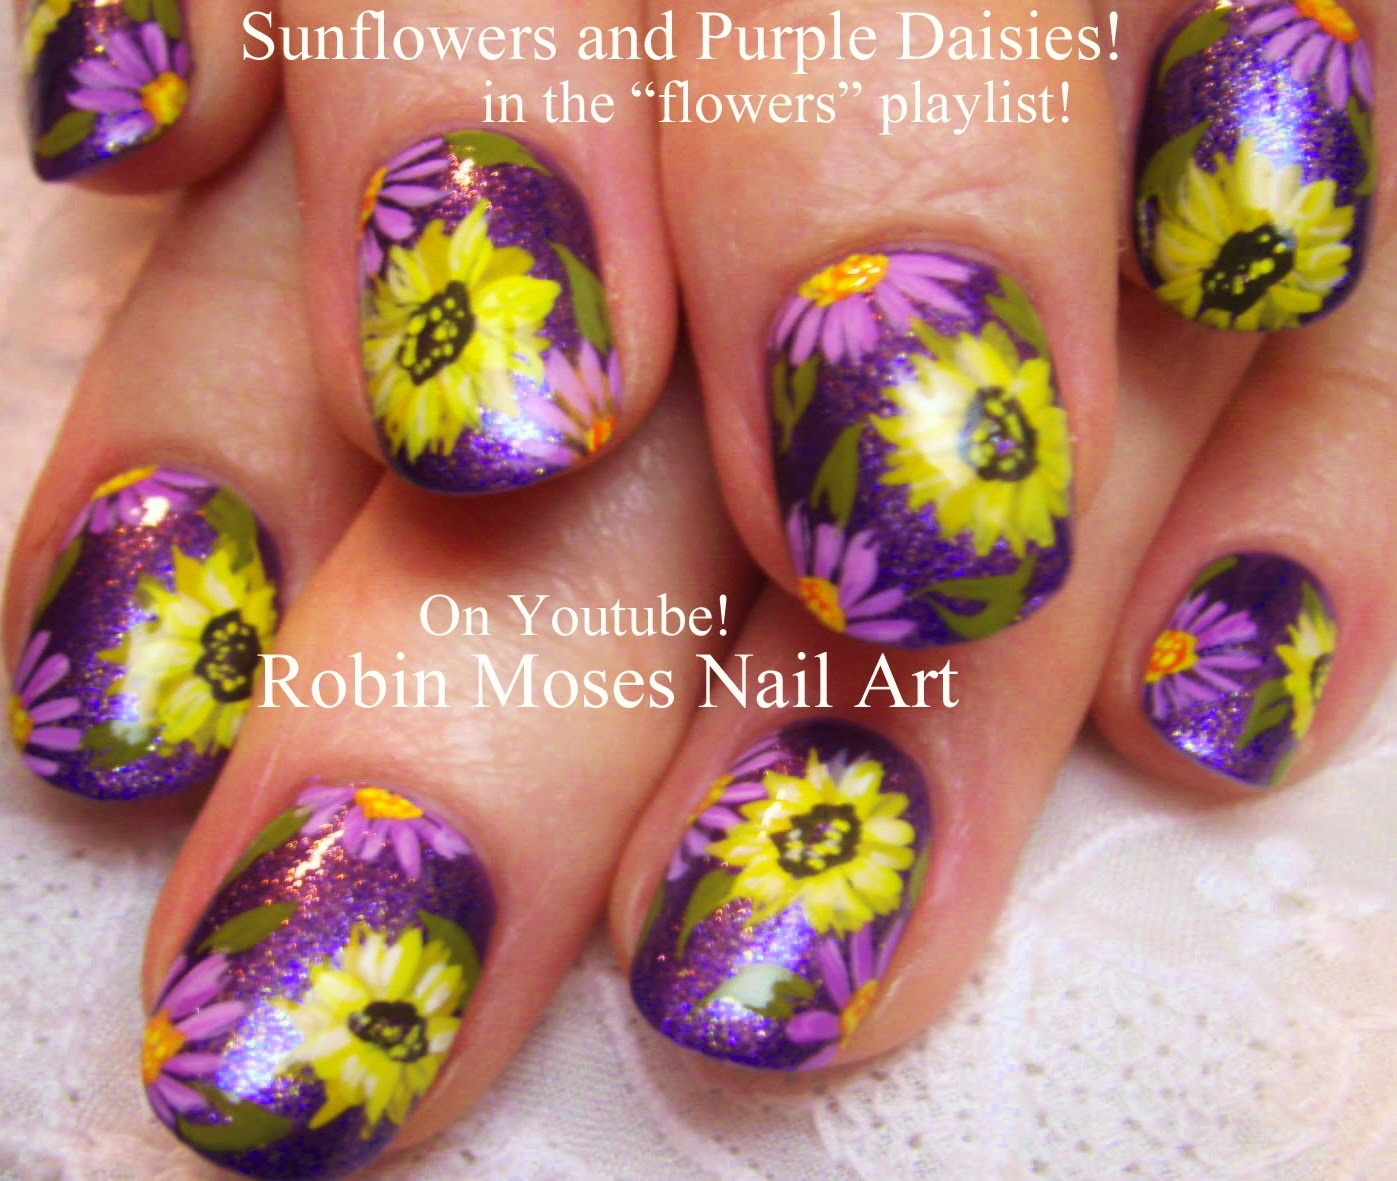 Nail Art By Robin Moses Flower Nails Nail Art Sunflower Nail